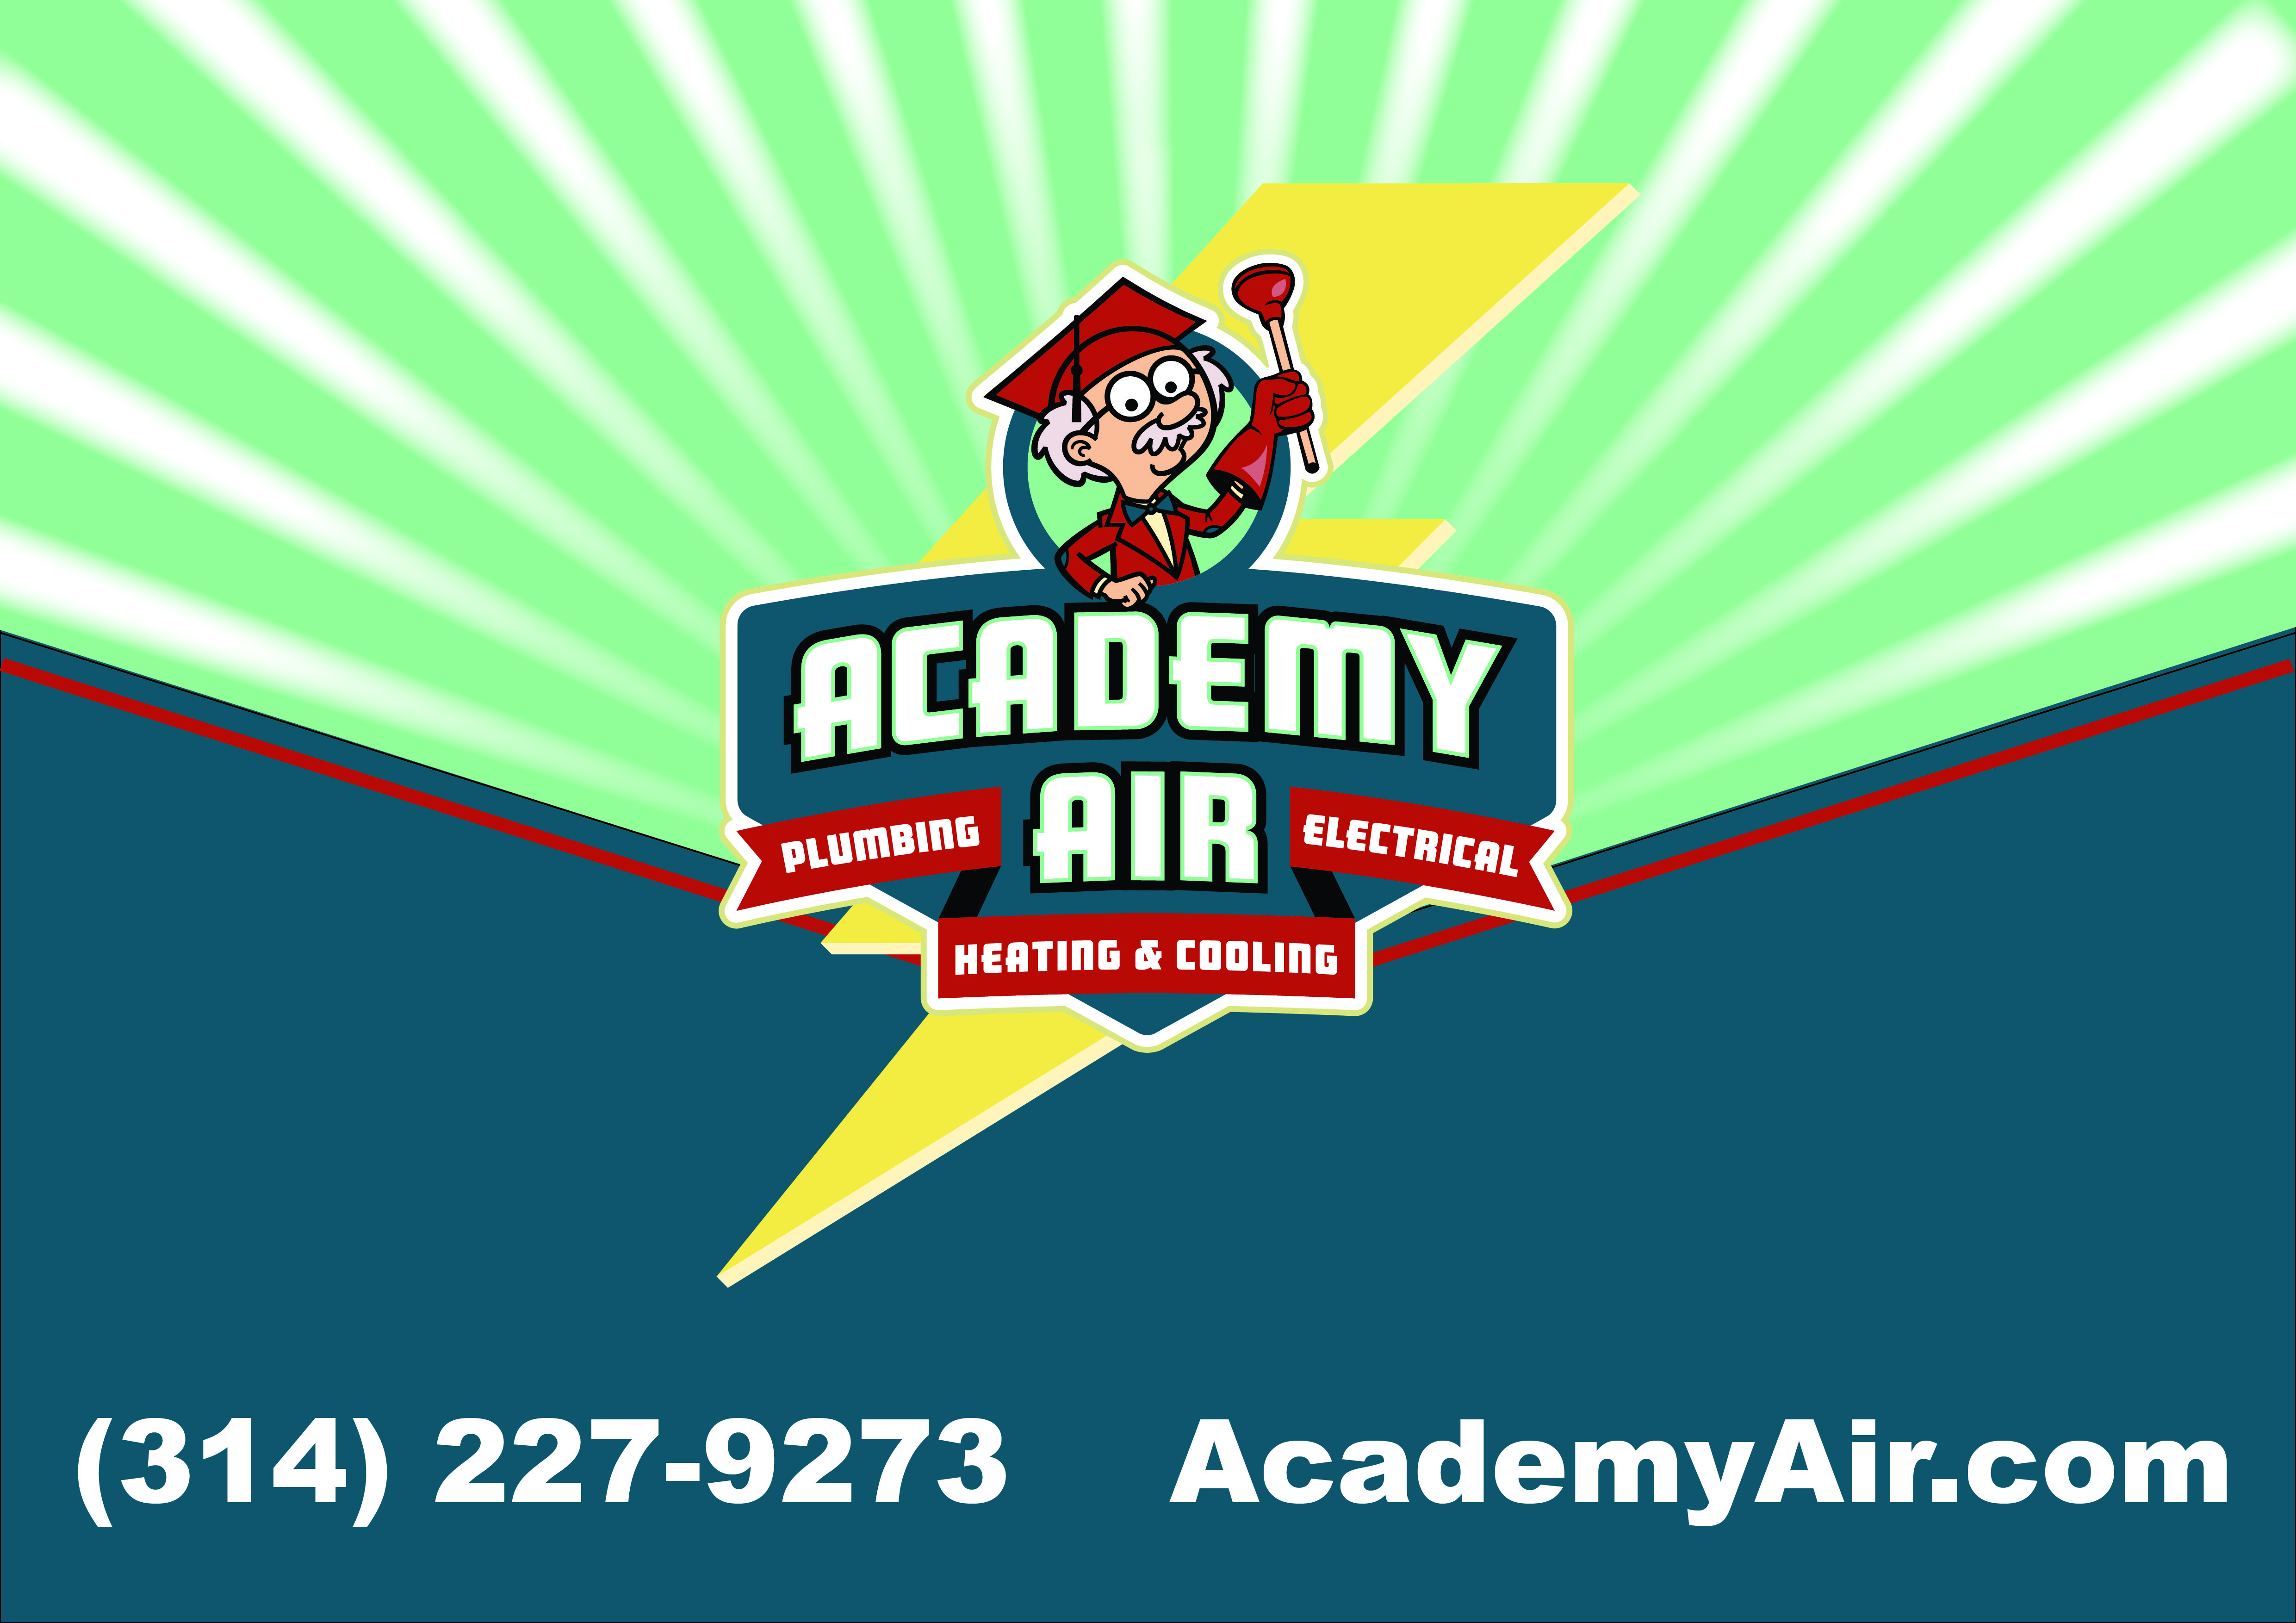 Call Academy Air For All Of Your Heating Cooling Plumbing And